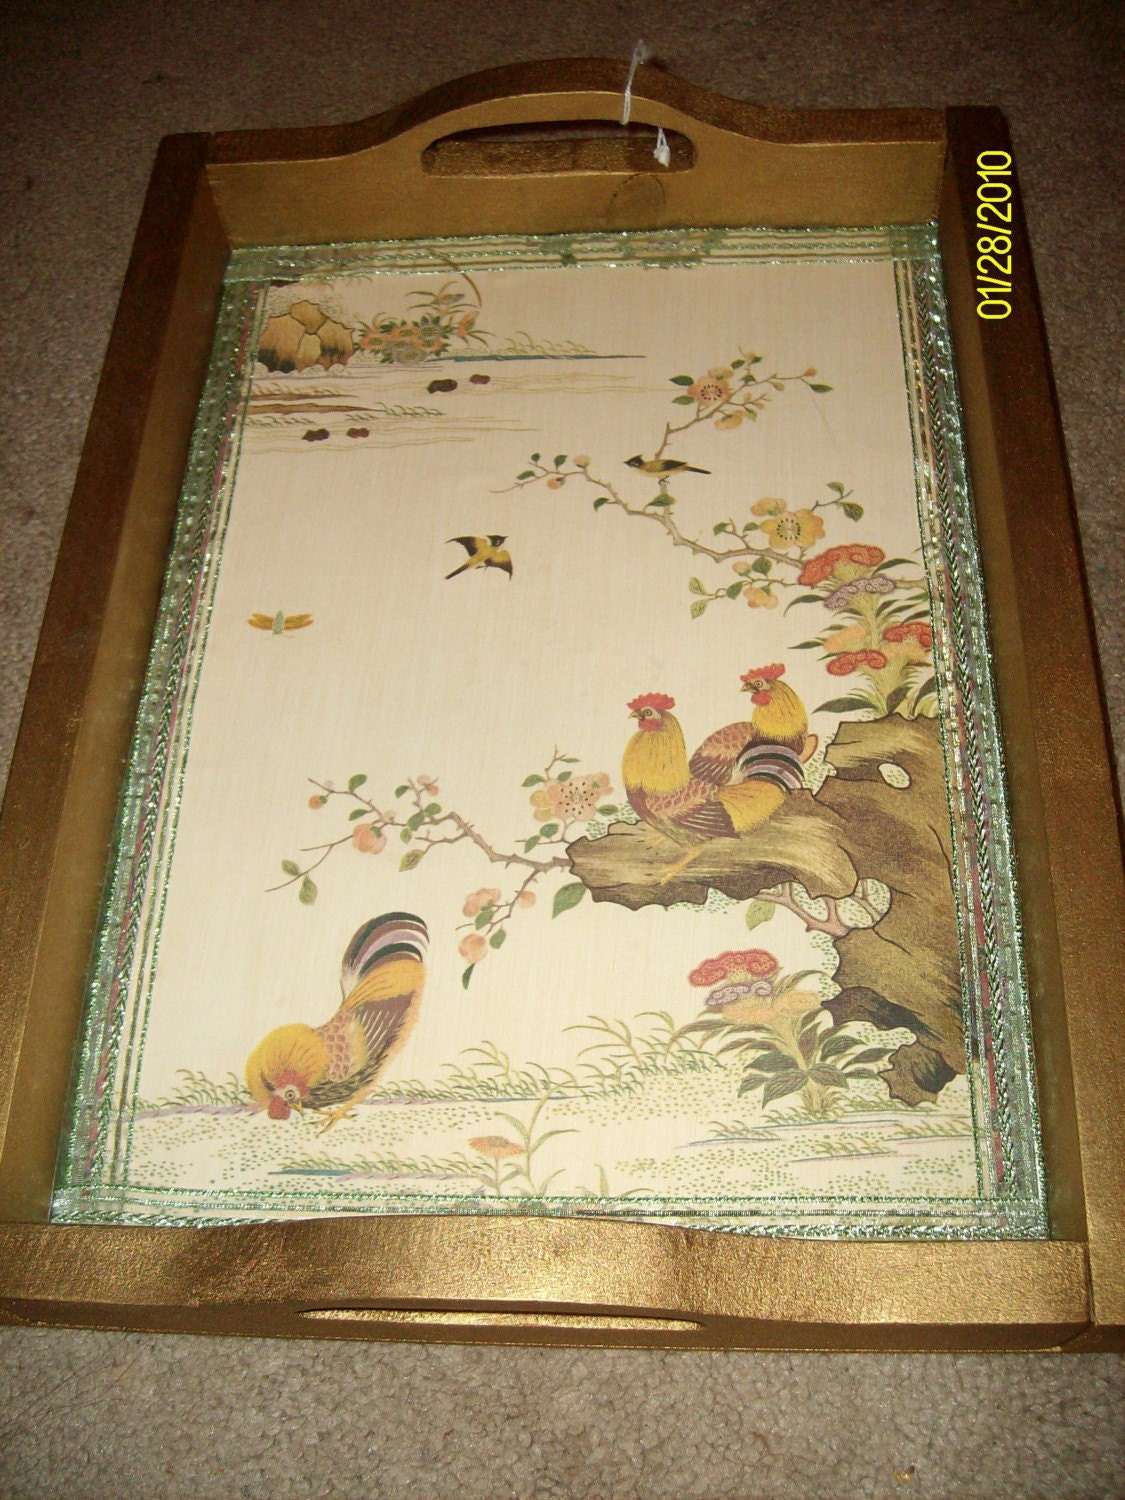 This is a beautiful wooden tray that has been painted gold and then has an oriental printed wallpaper on the bottom with roosters on it.